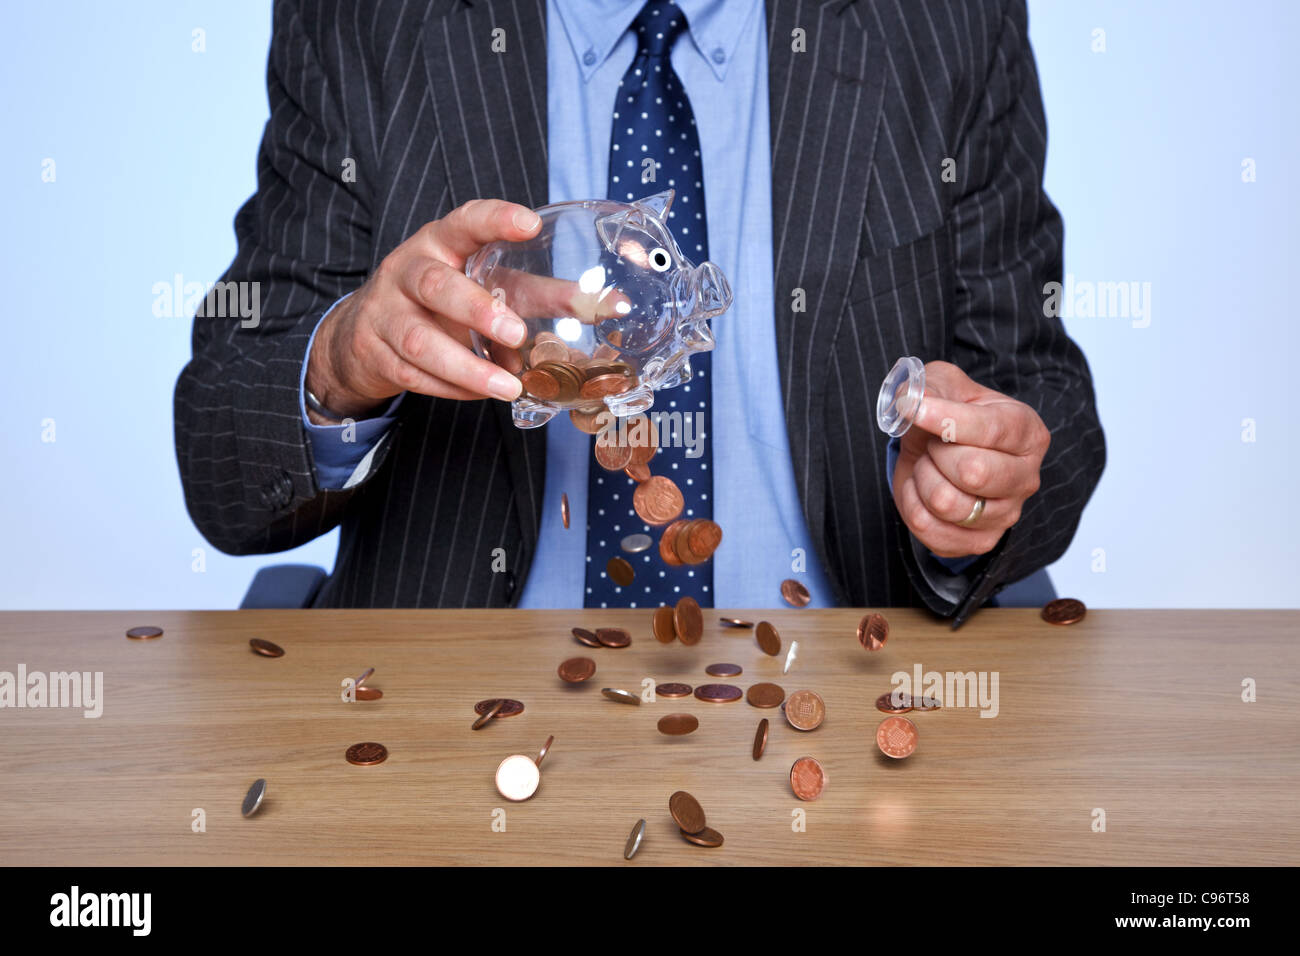 Photo of a banker sat at his desk emptying coins from his piggy bank. - Stock Image